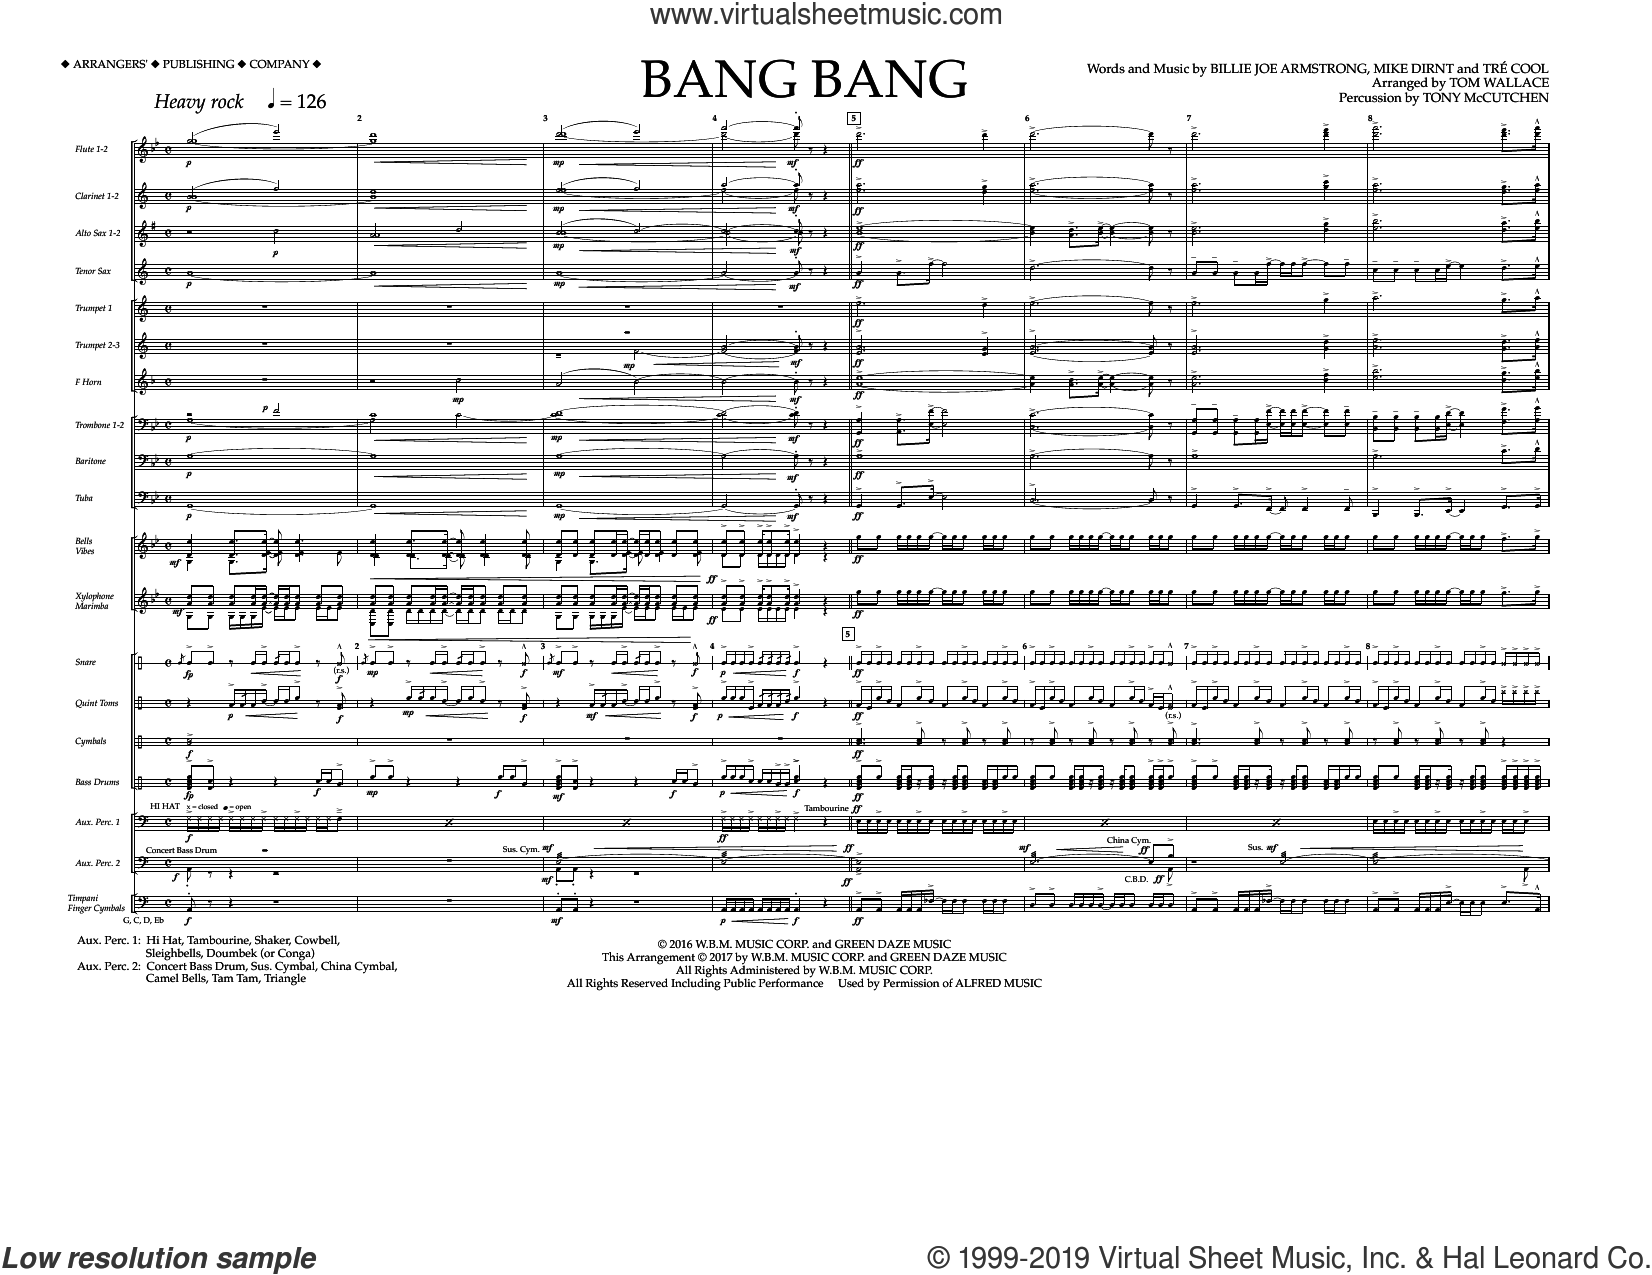 Bang Bang (COMPLETE) sheet music for marching band by Green Day, Billie Joe Armstrong, Mike Dirnt, Tom Wallace and Tre Cool, intermediate skill level